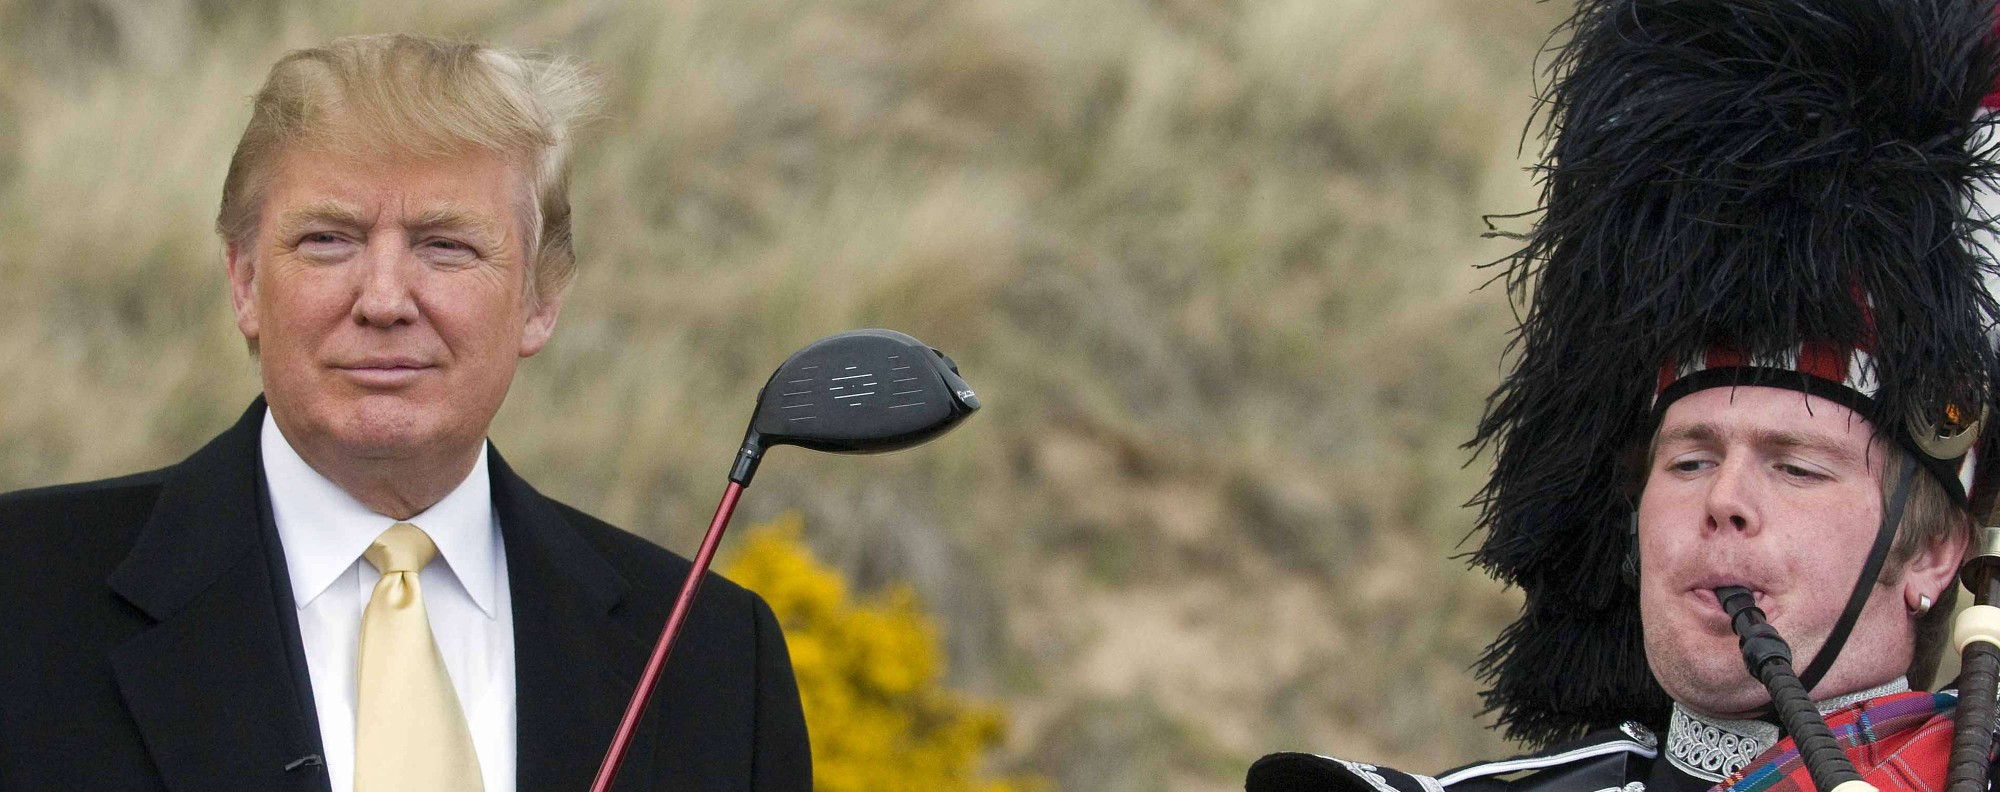 Donald Trump at his golf course on the Menie Estate. Photo: AFP